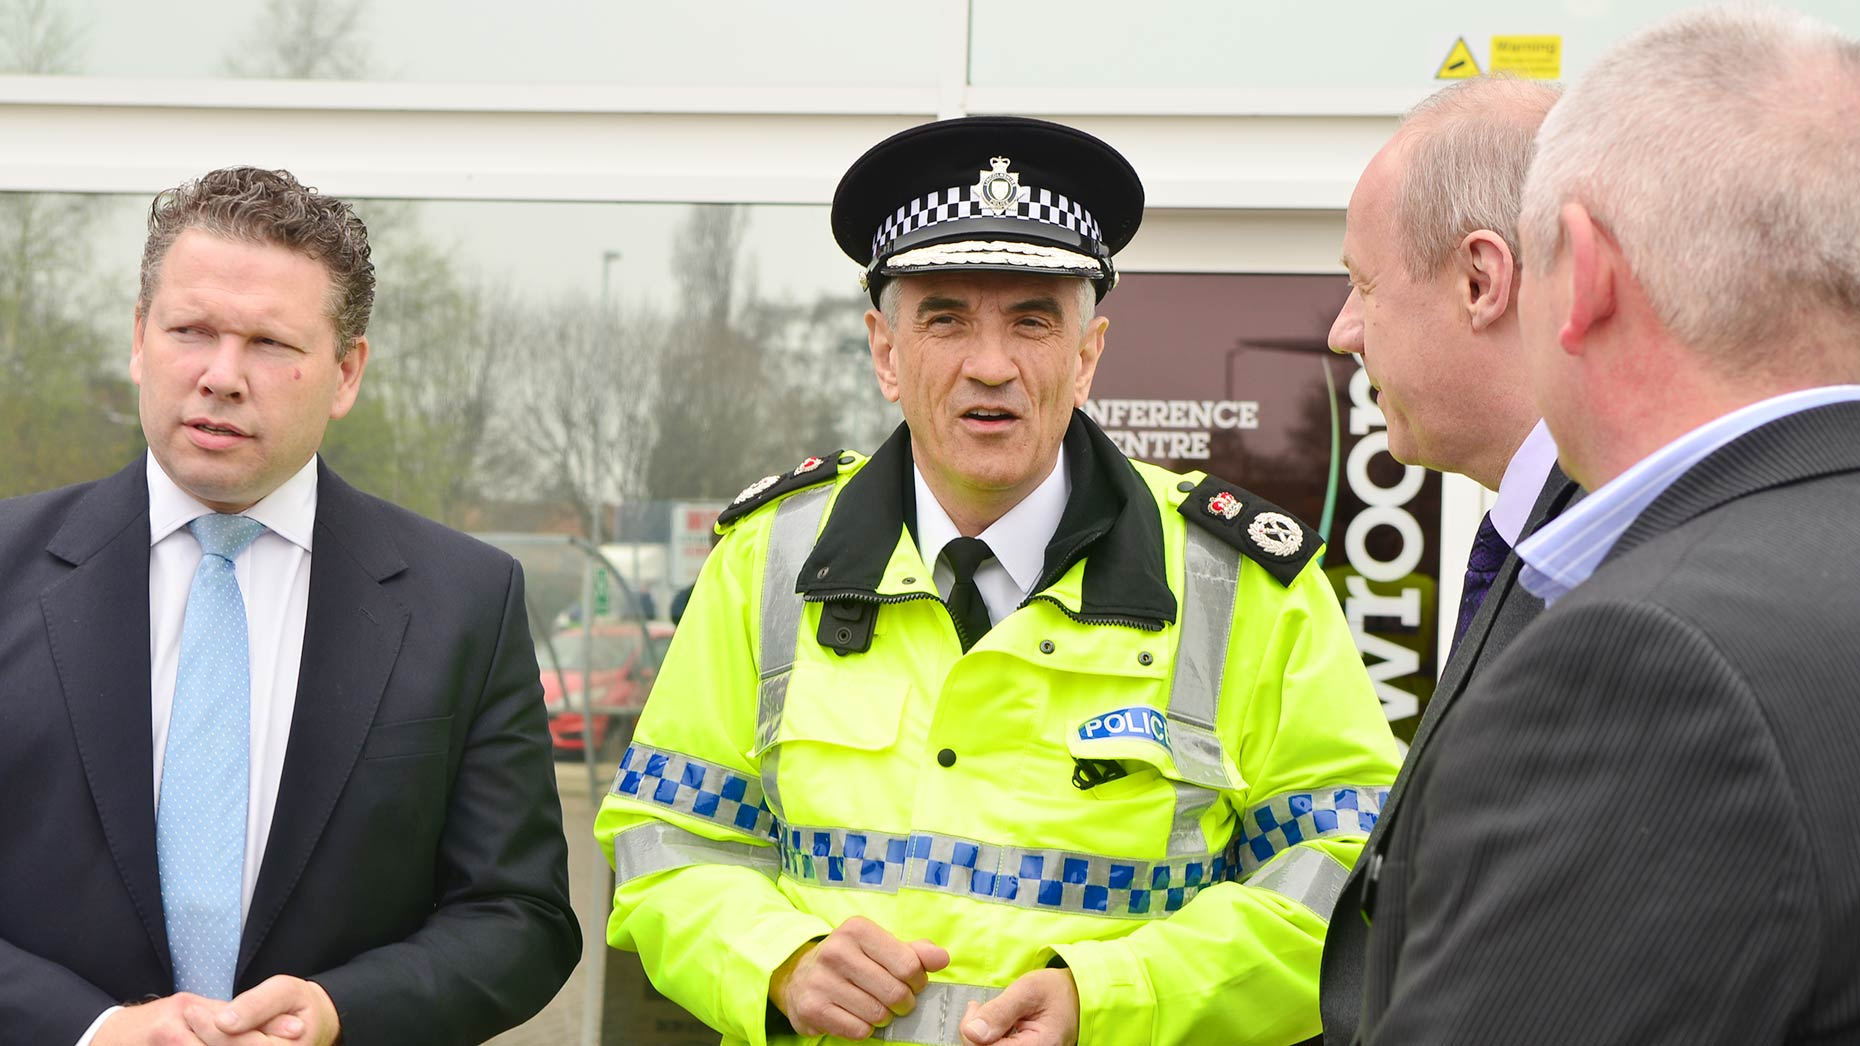 Lincolnshire Police Chief Constable Neil Rhodes speaking with the minister and Lincoln MP. Photo: Steve Smailes for The Lincolnite